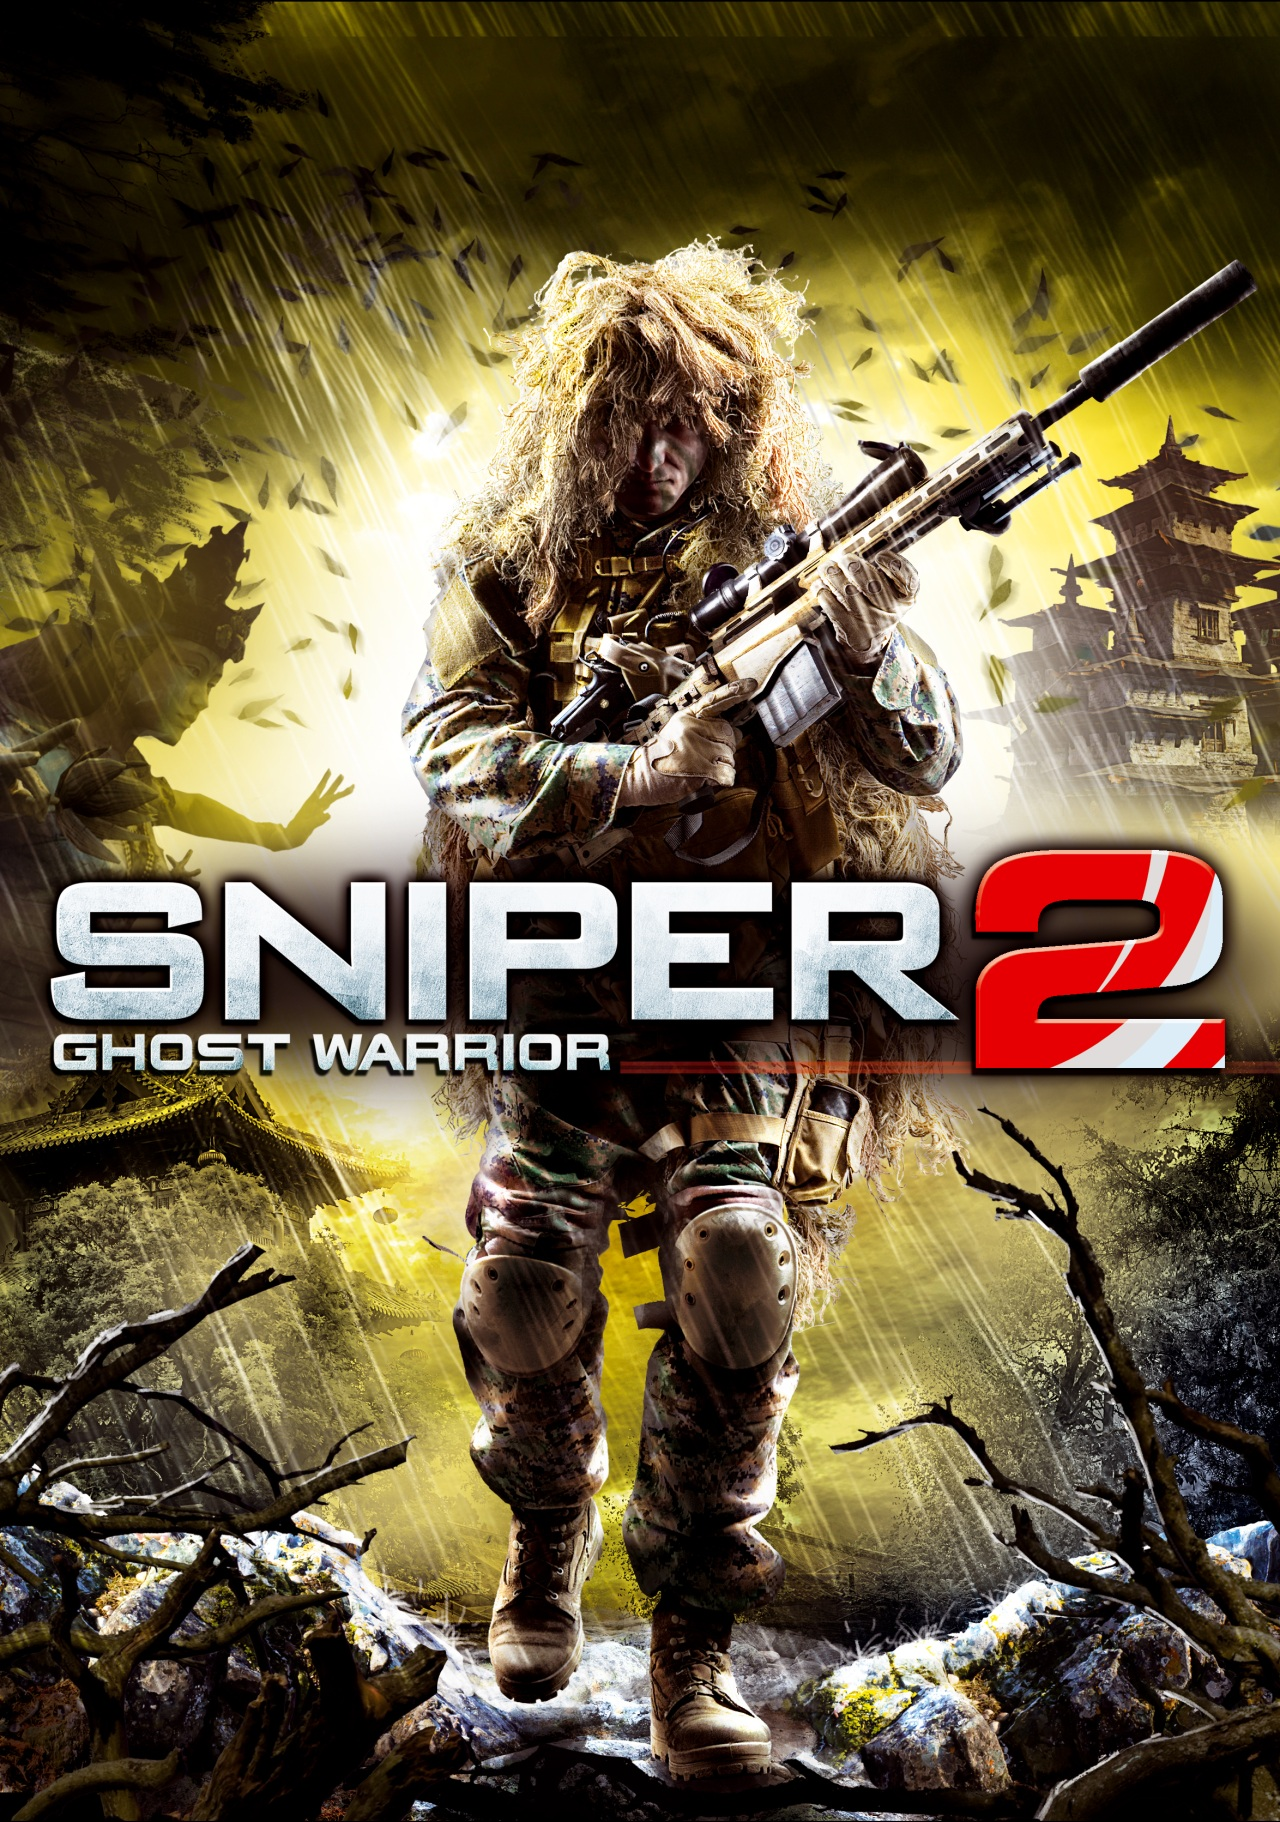 http://img3.downloadha.com/Hosein/Pic/sniper-ghost-warrior-2-cover-large.jpg